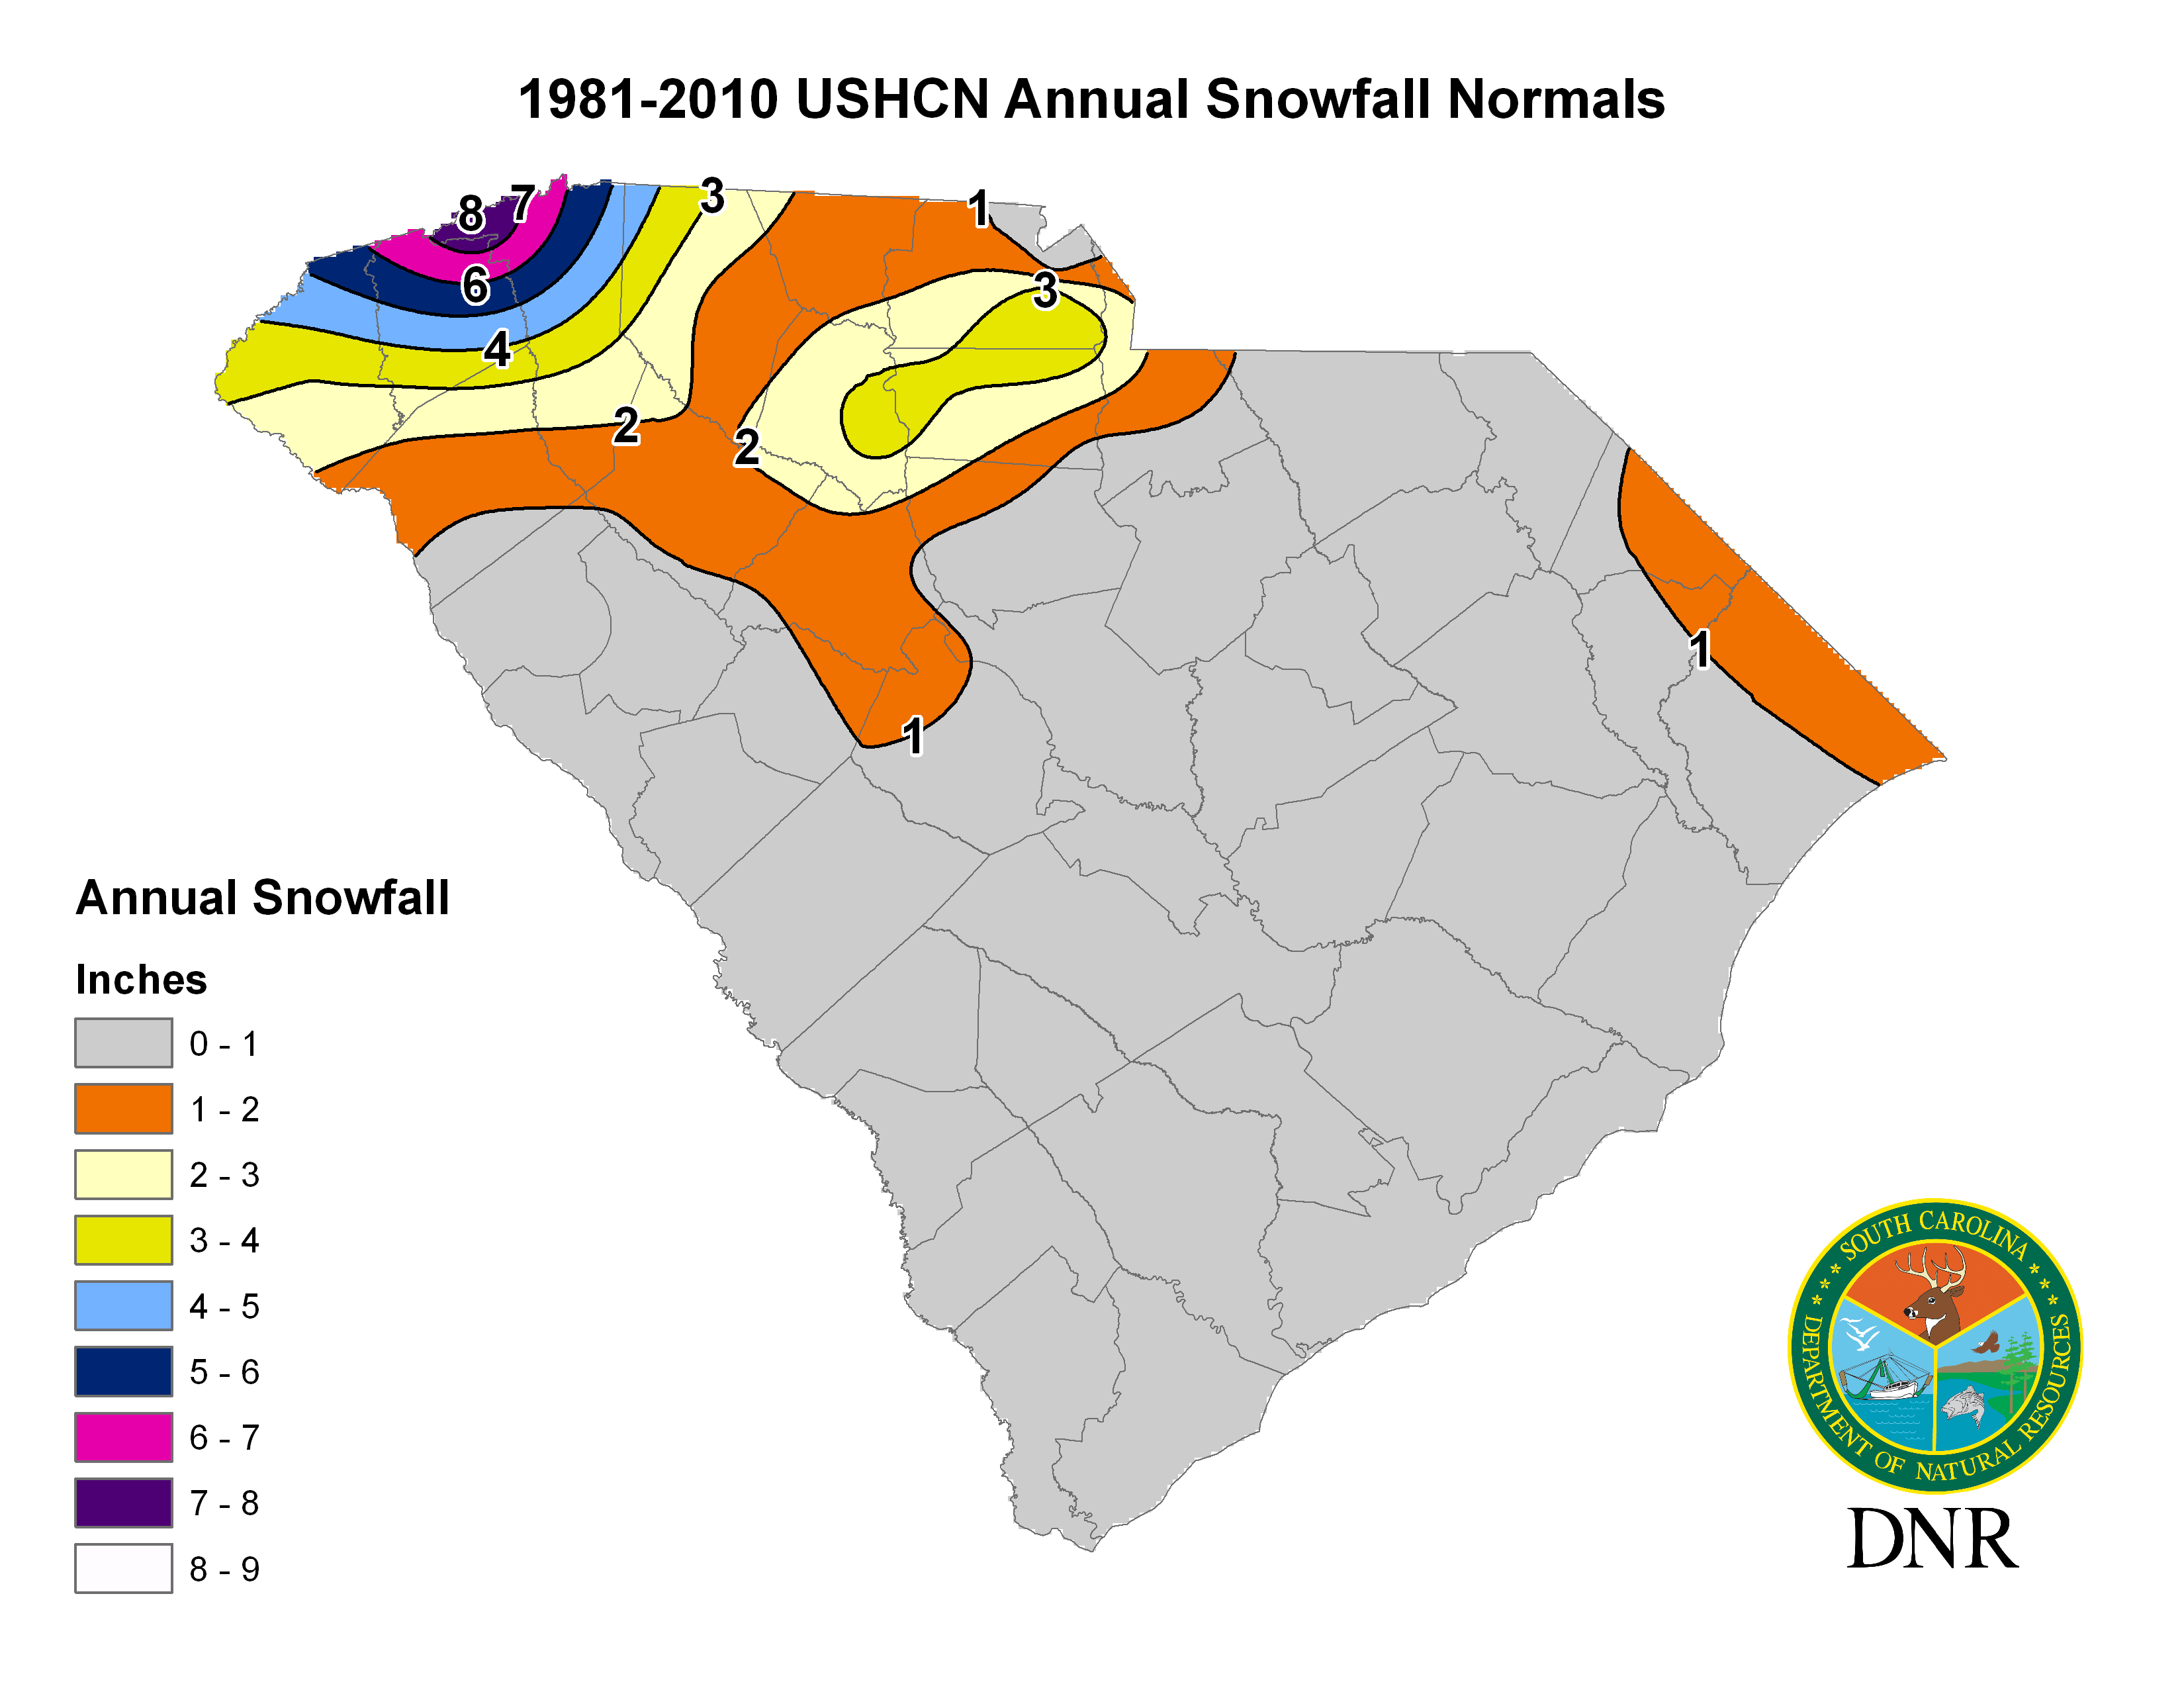 South Carolina State Climatology Office - Us annual snowfall map